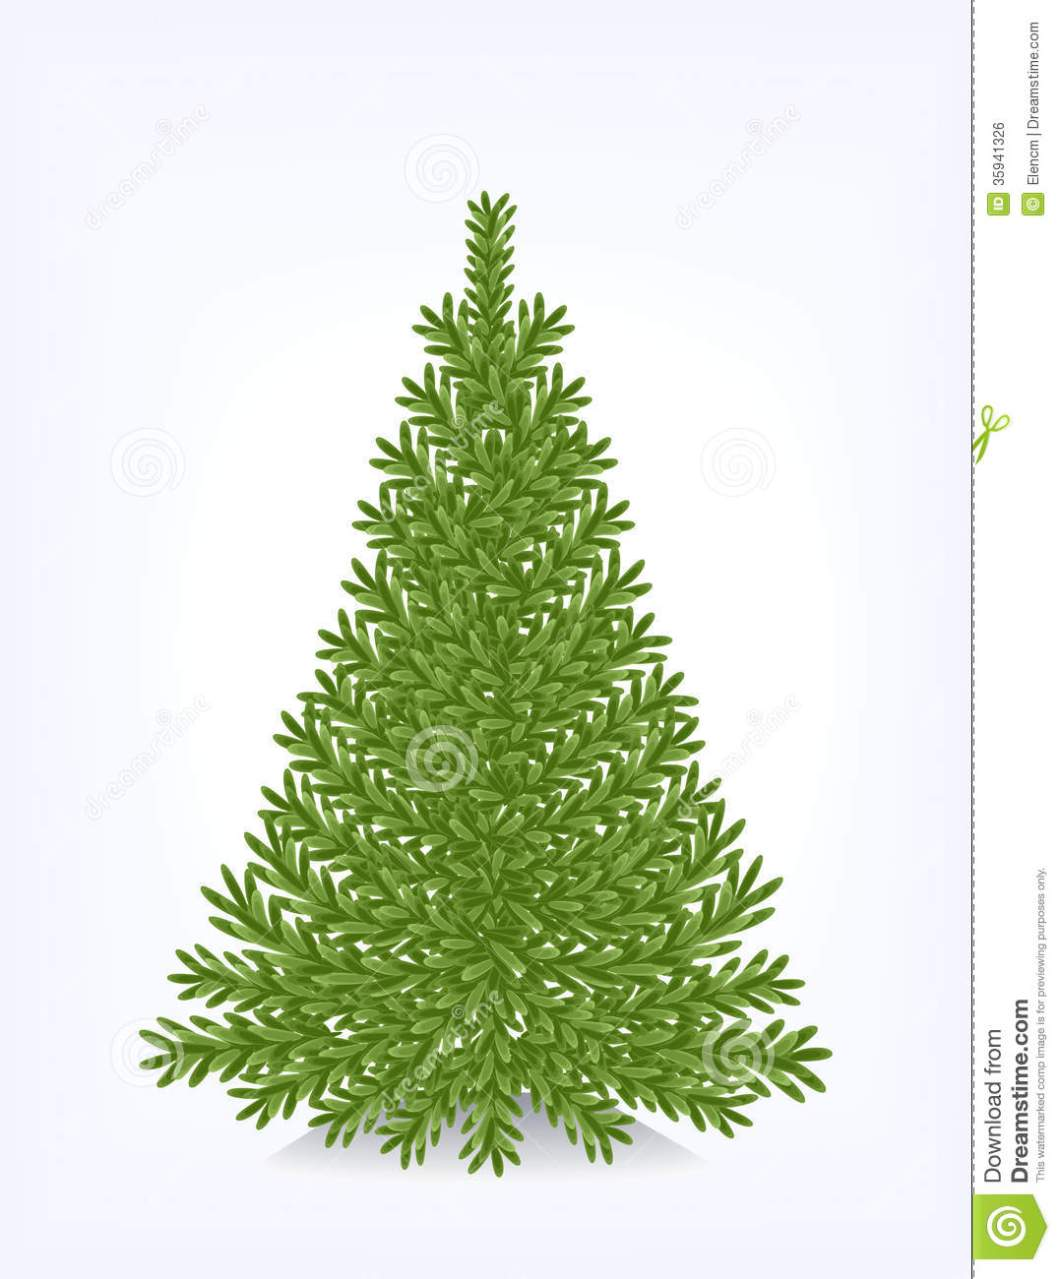 How To Decorate A Christmas Tree Without Ornaments Psoriasisguru Com